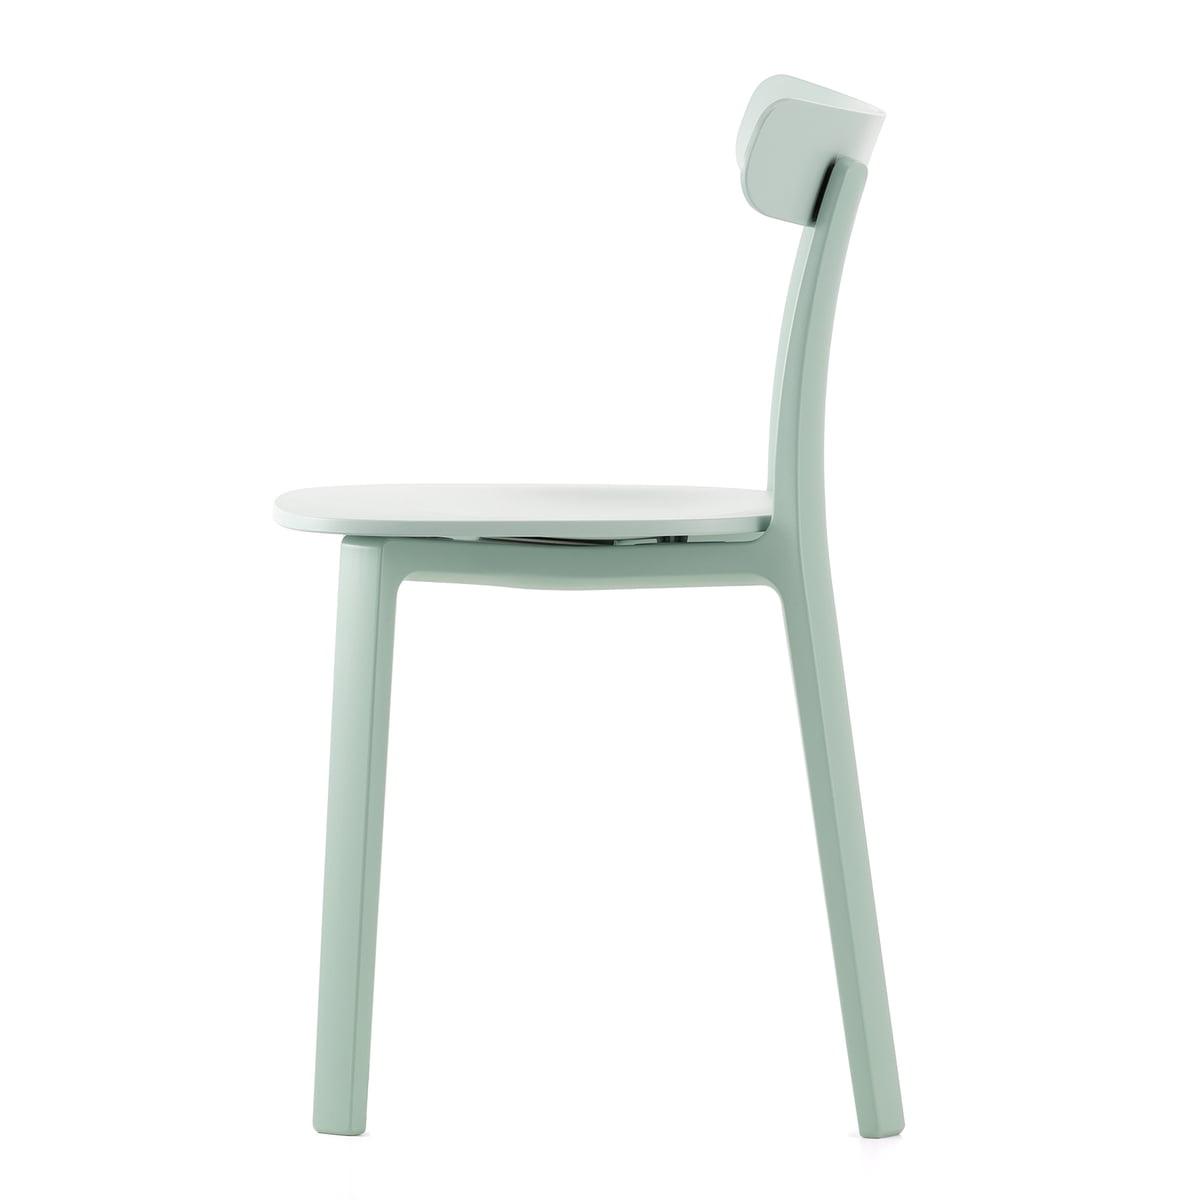 The all plastic chair in ice grey by vitra the comfortable chair with felt glides